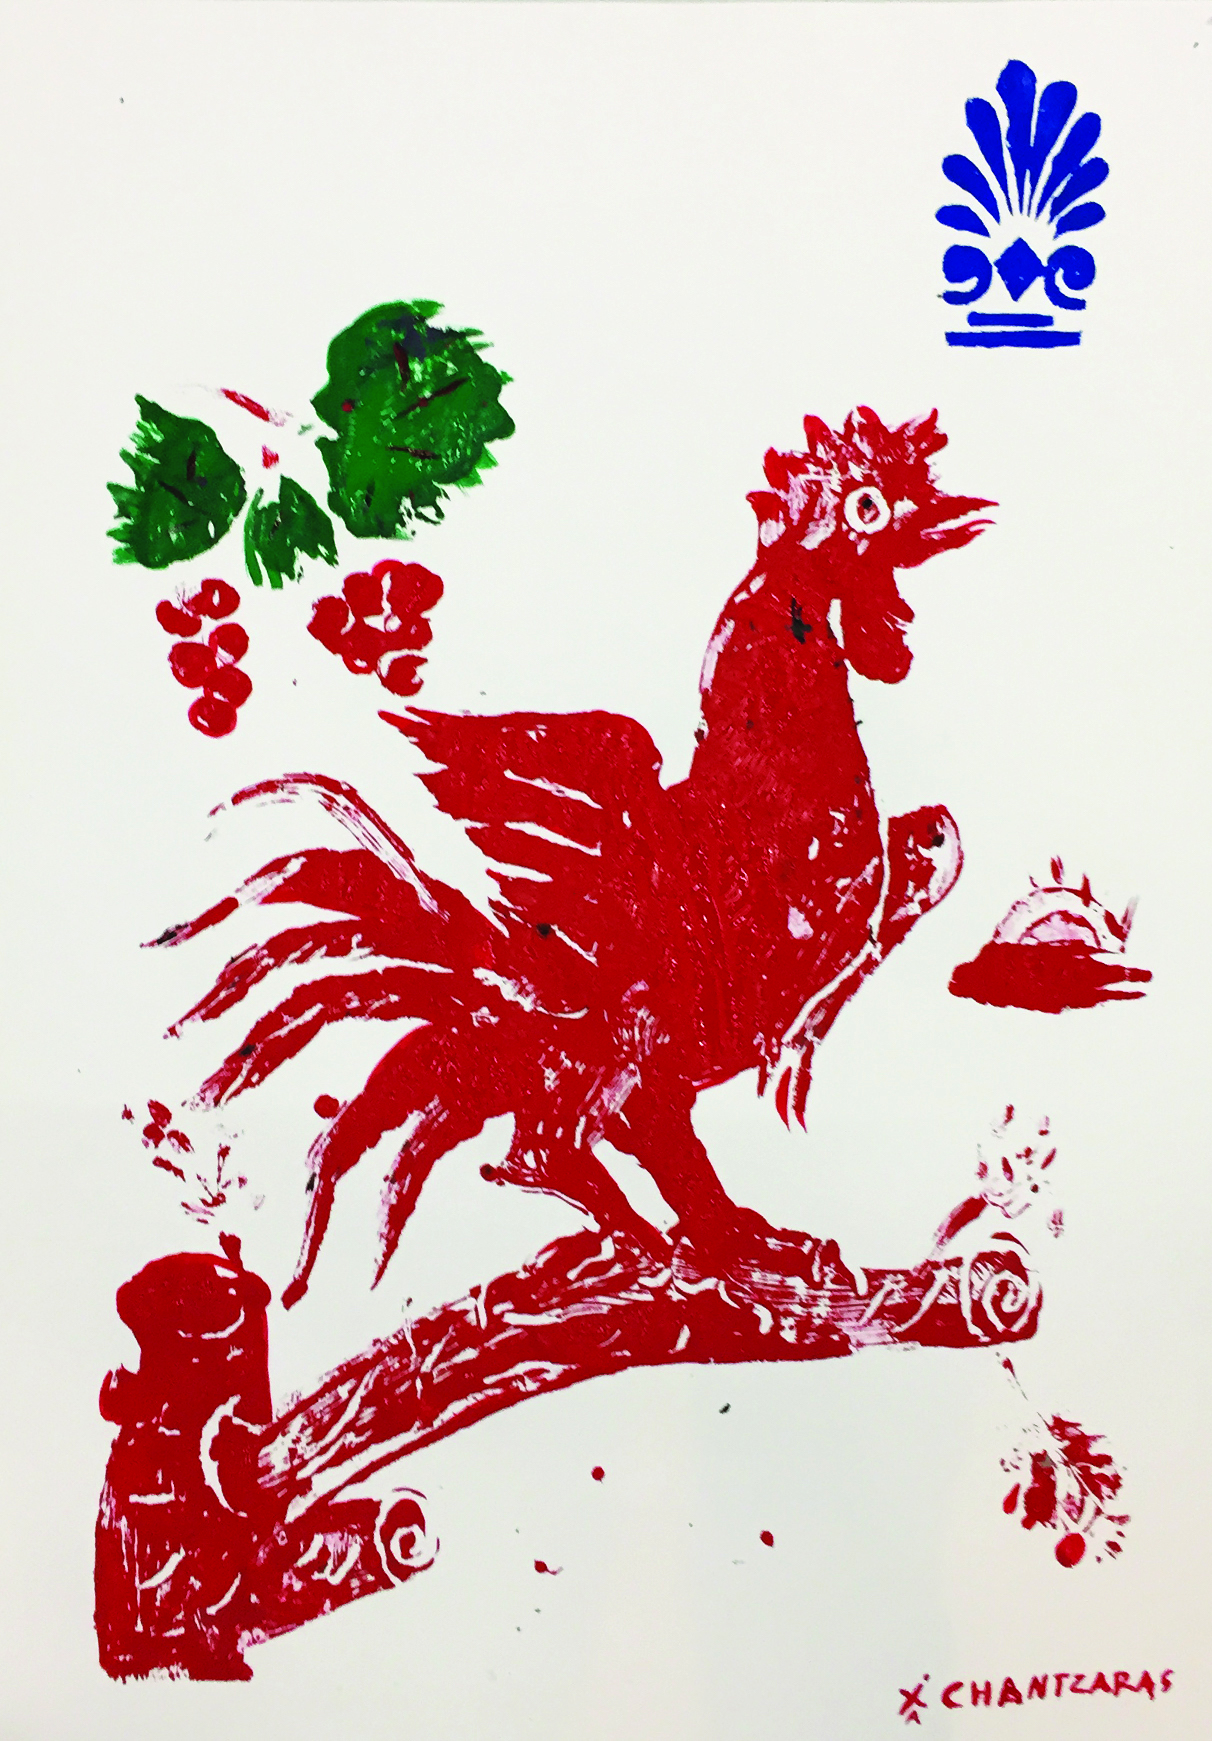 The Rooster_100x70cm_lg.jpg